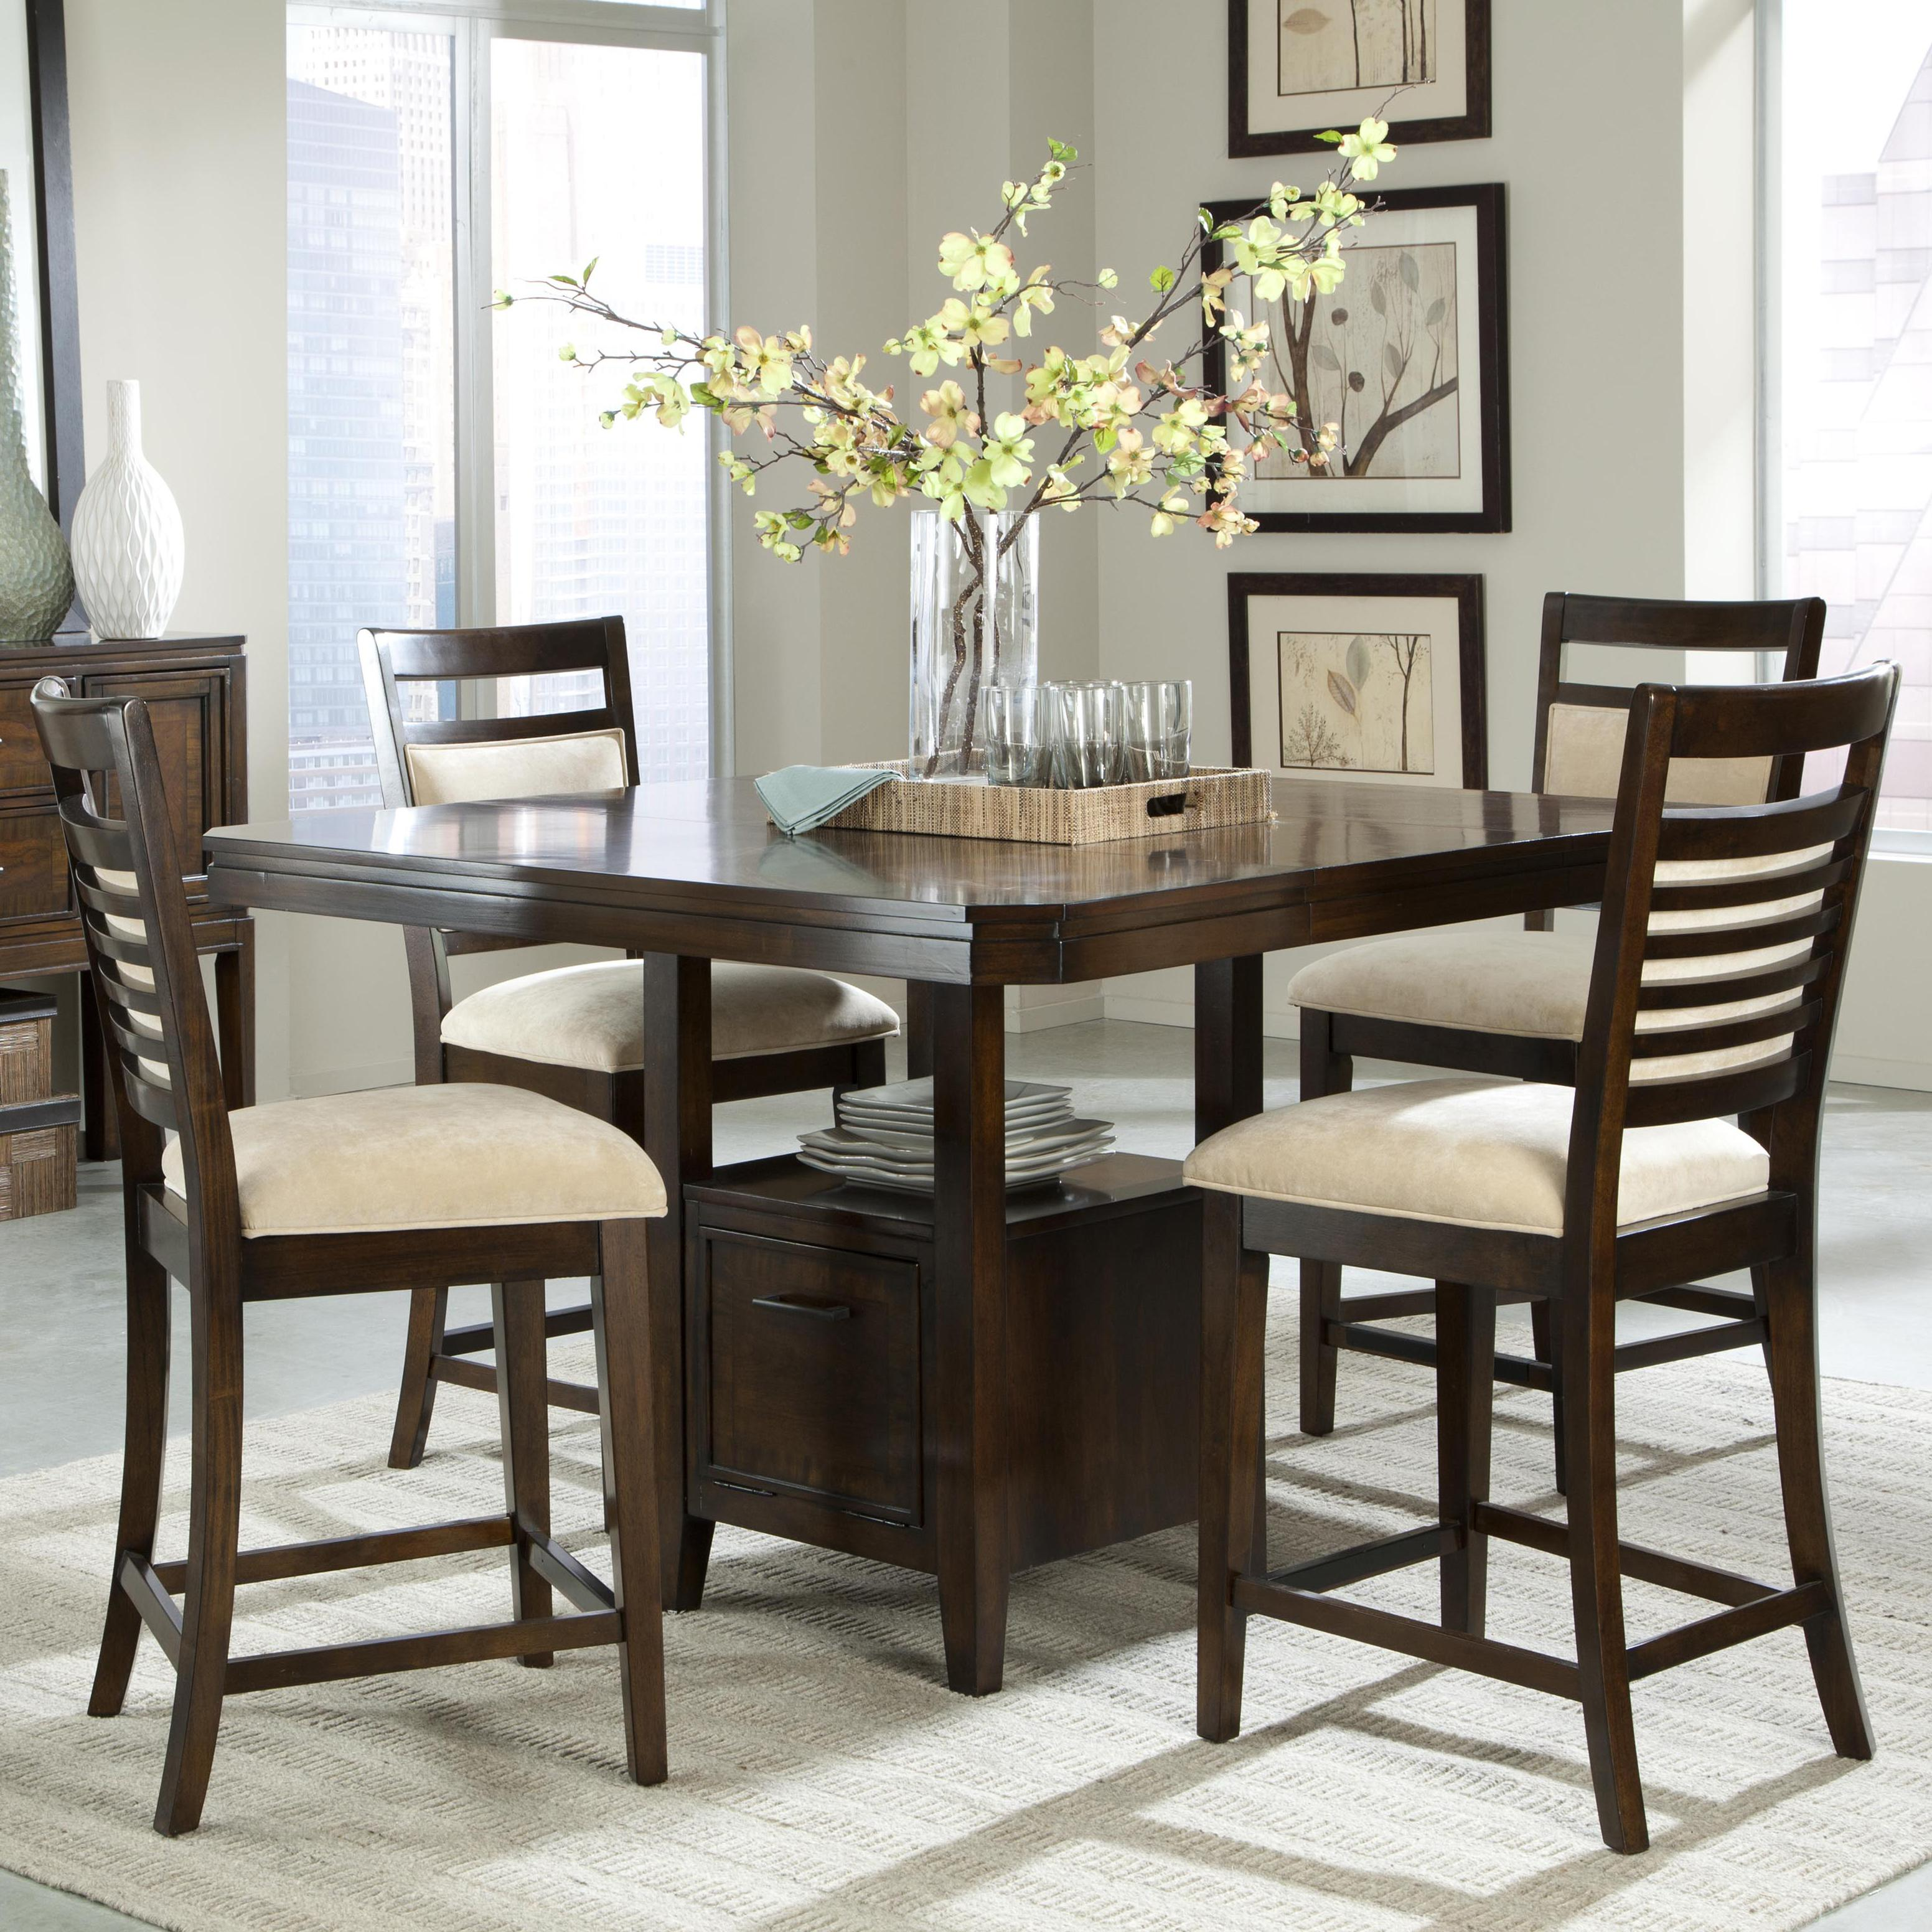 Standard Furniture Cambria Rectangular White Wood And: Standard Furniture Avion 5 Piece Counter Height Table Set